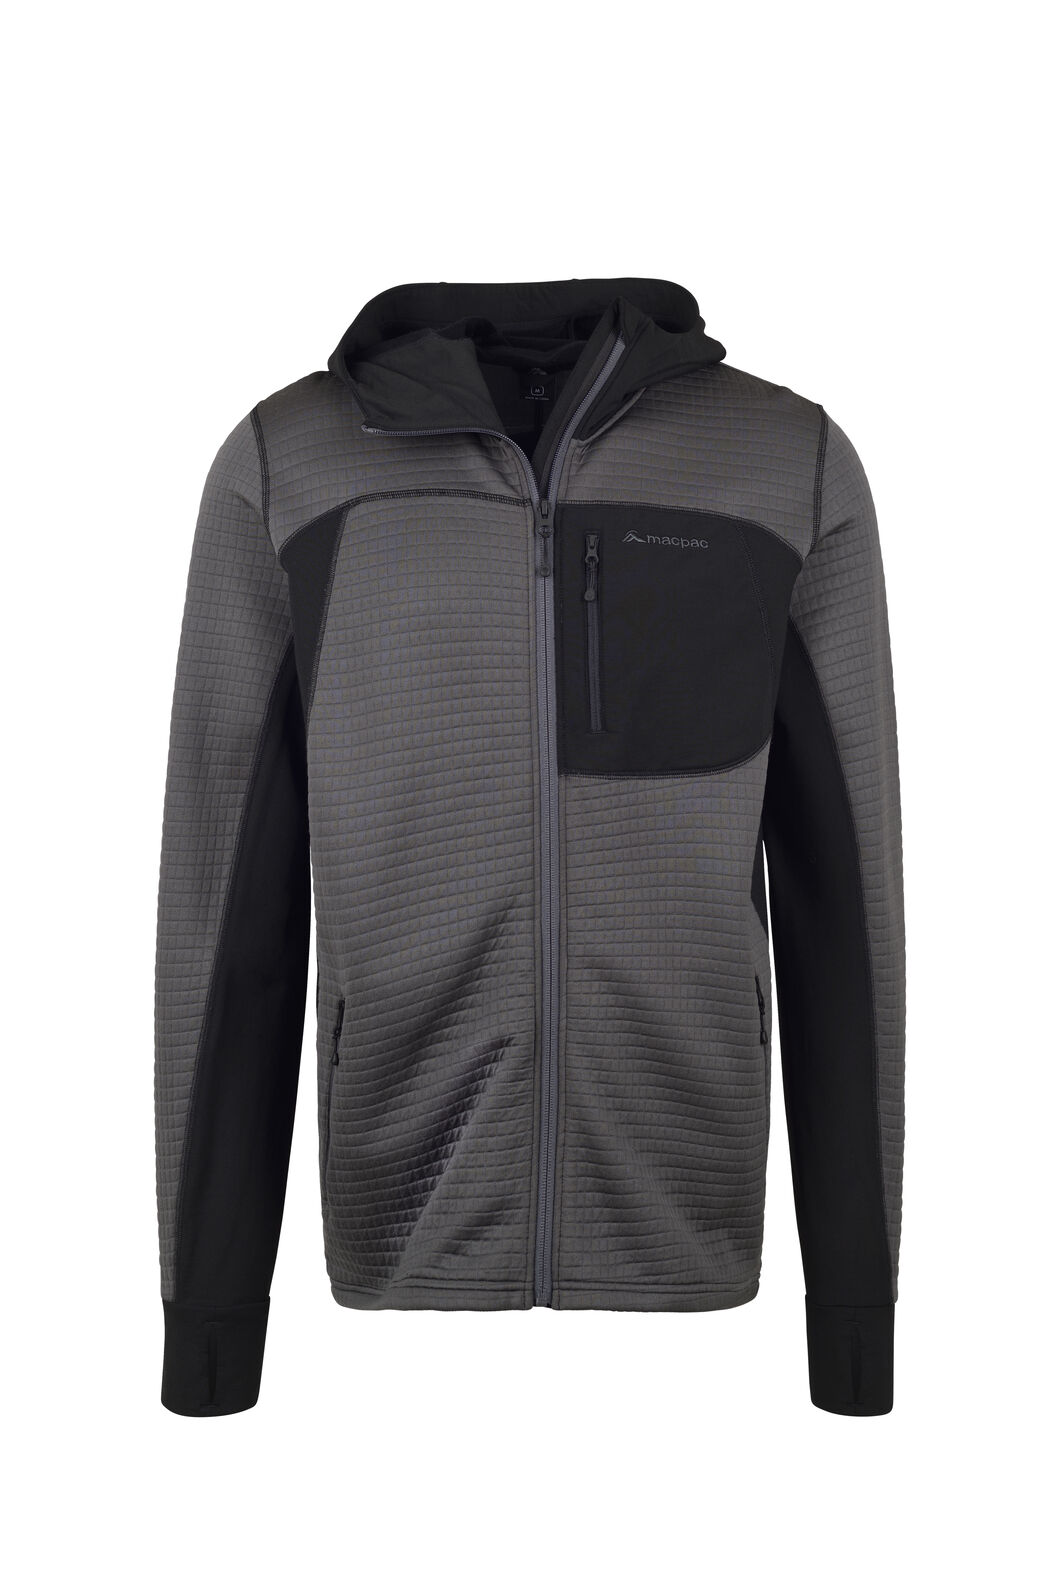 Macpac Triton Merino Blend Hooded Jacket — Men's, Asphalt/Black, hi-res